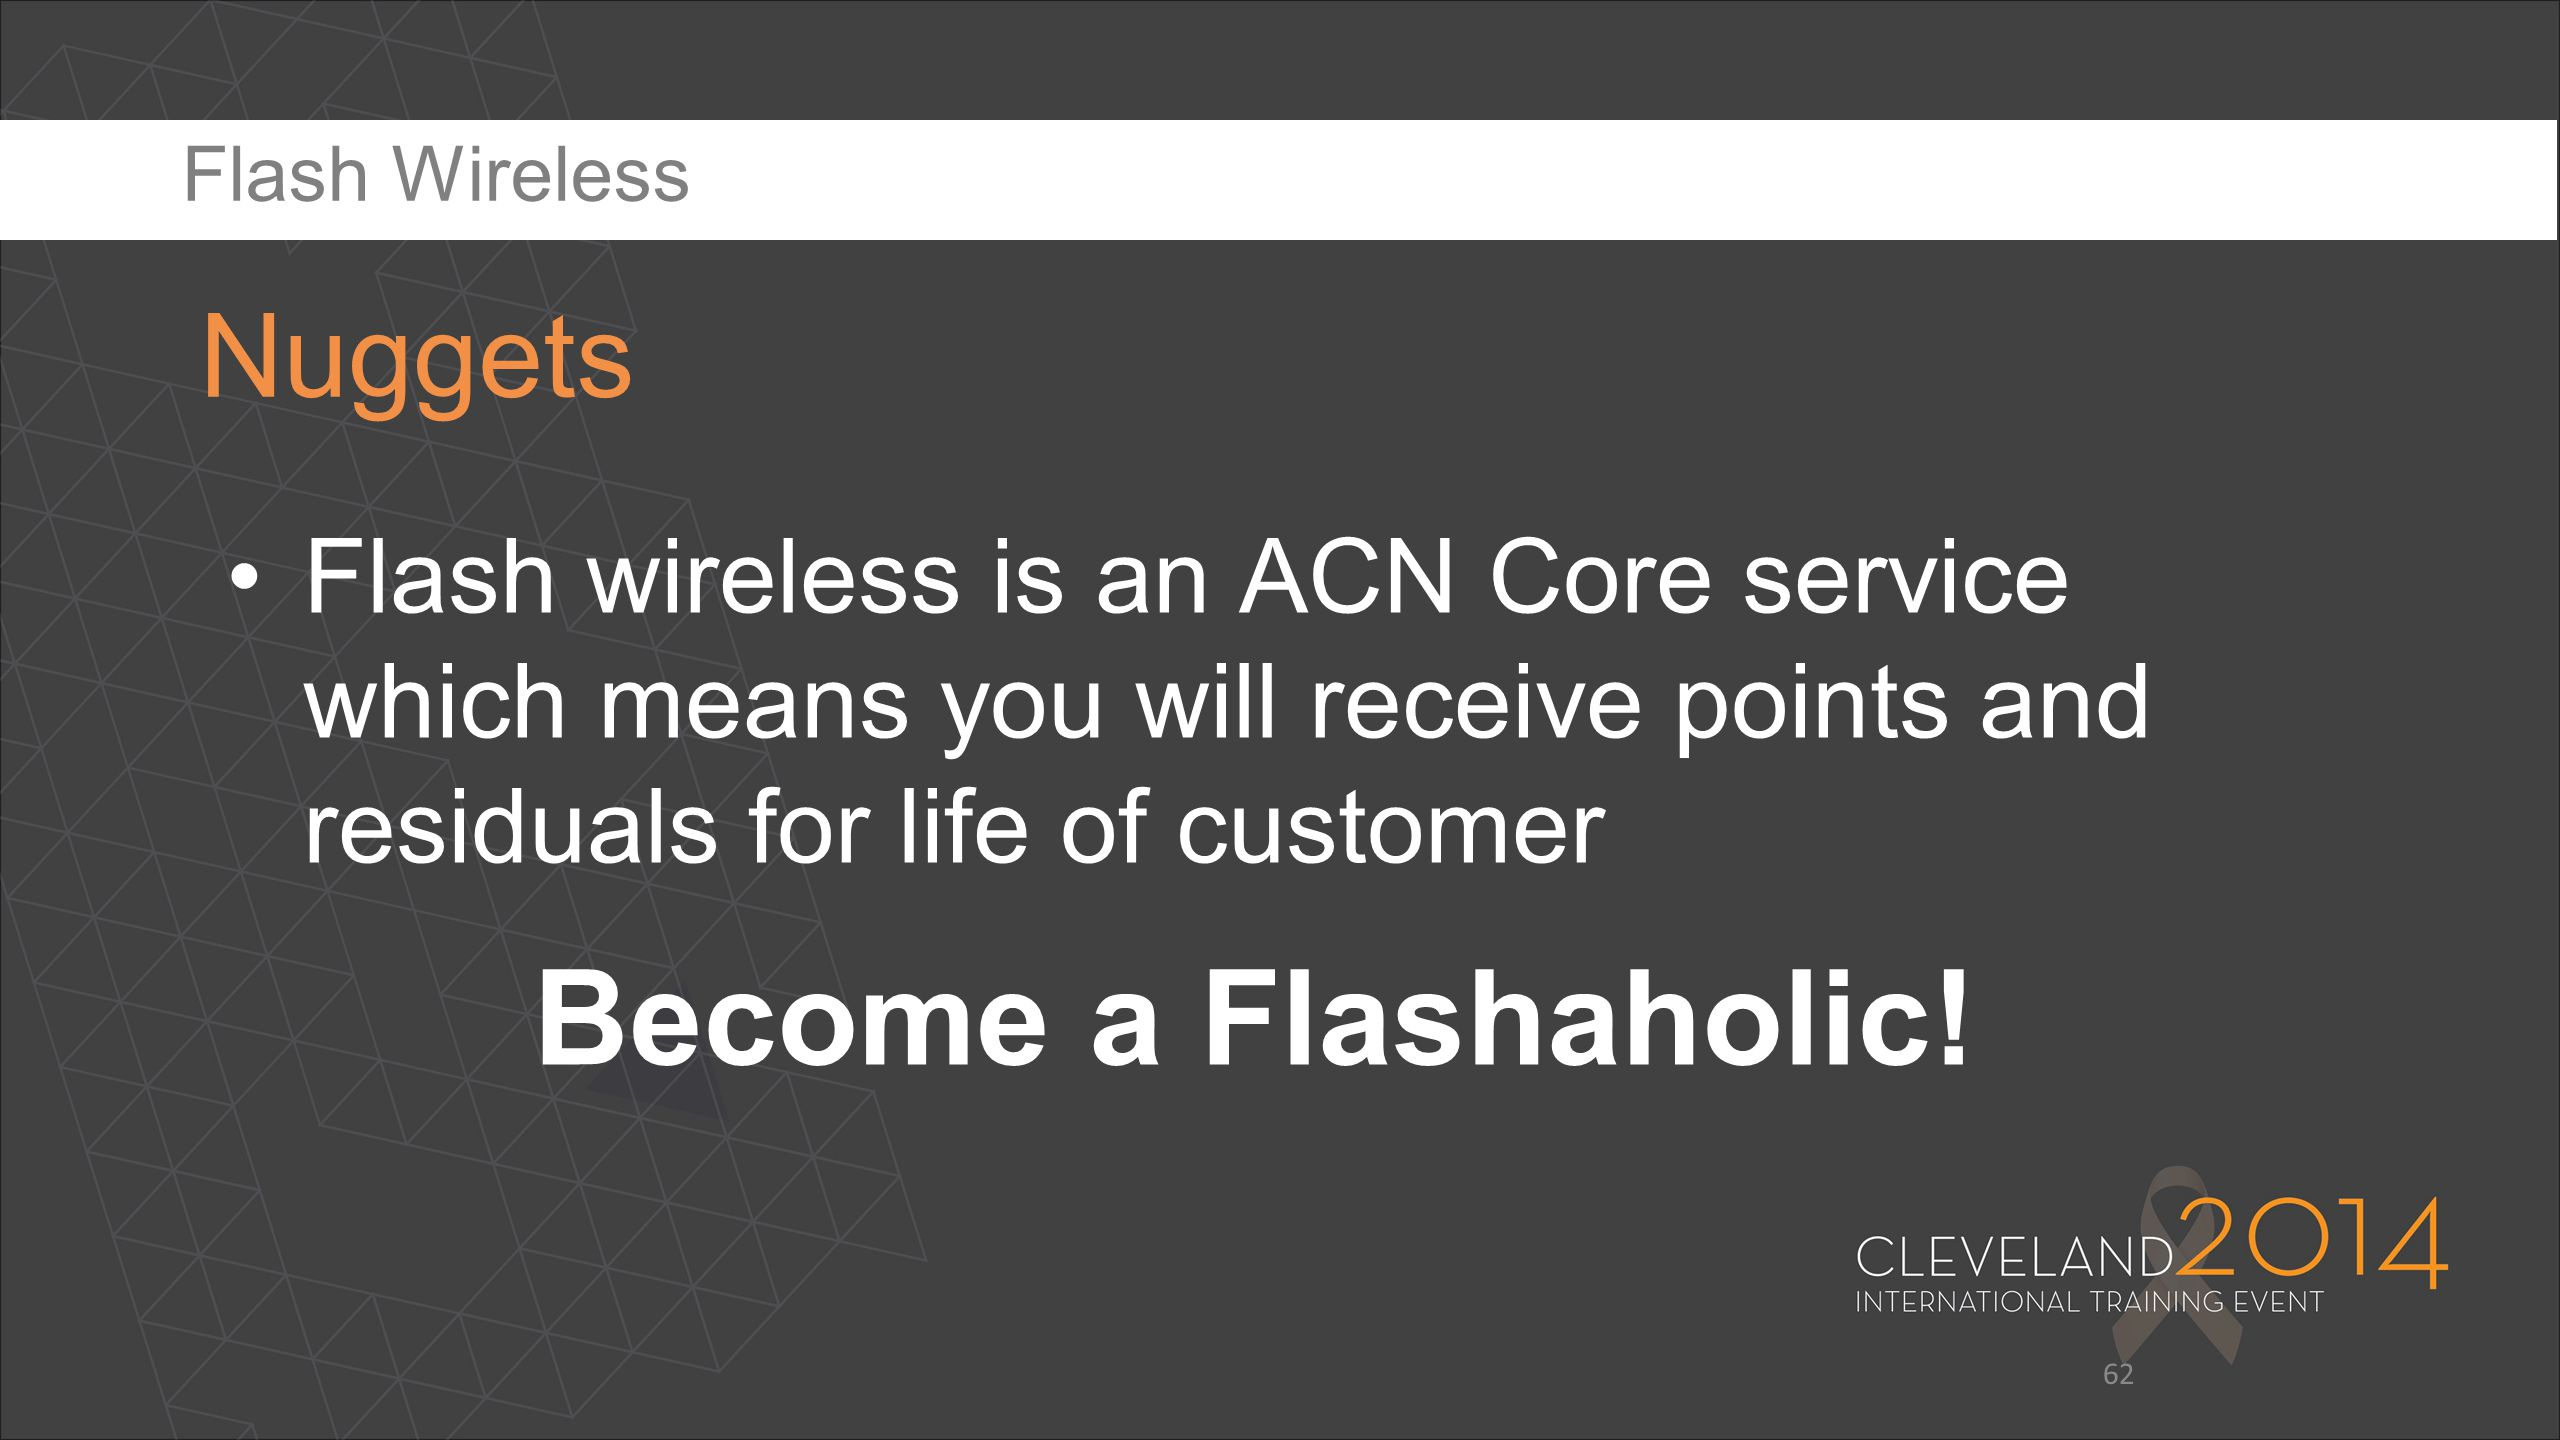 62 Flash wireless is an ACN Core service which means you will receive points and residuals for life of customer Become a Flashaholic! Nuggets Flash Wi